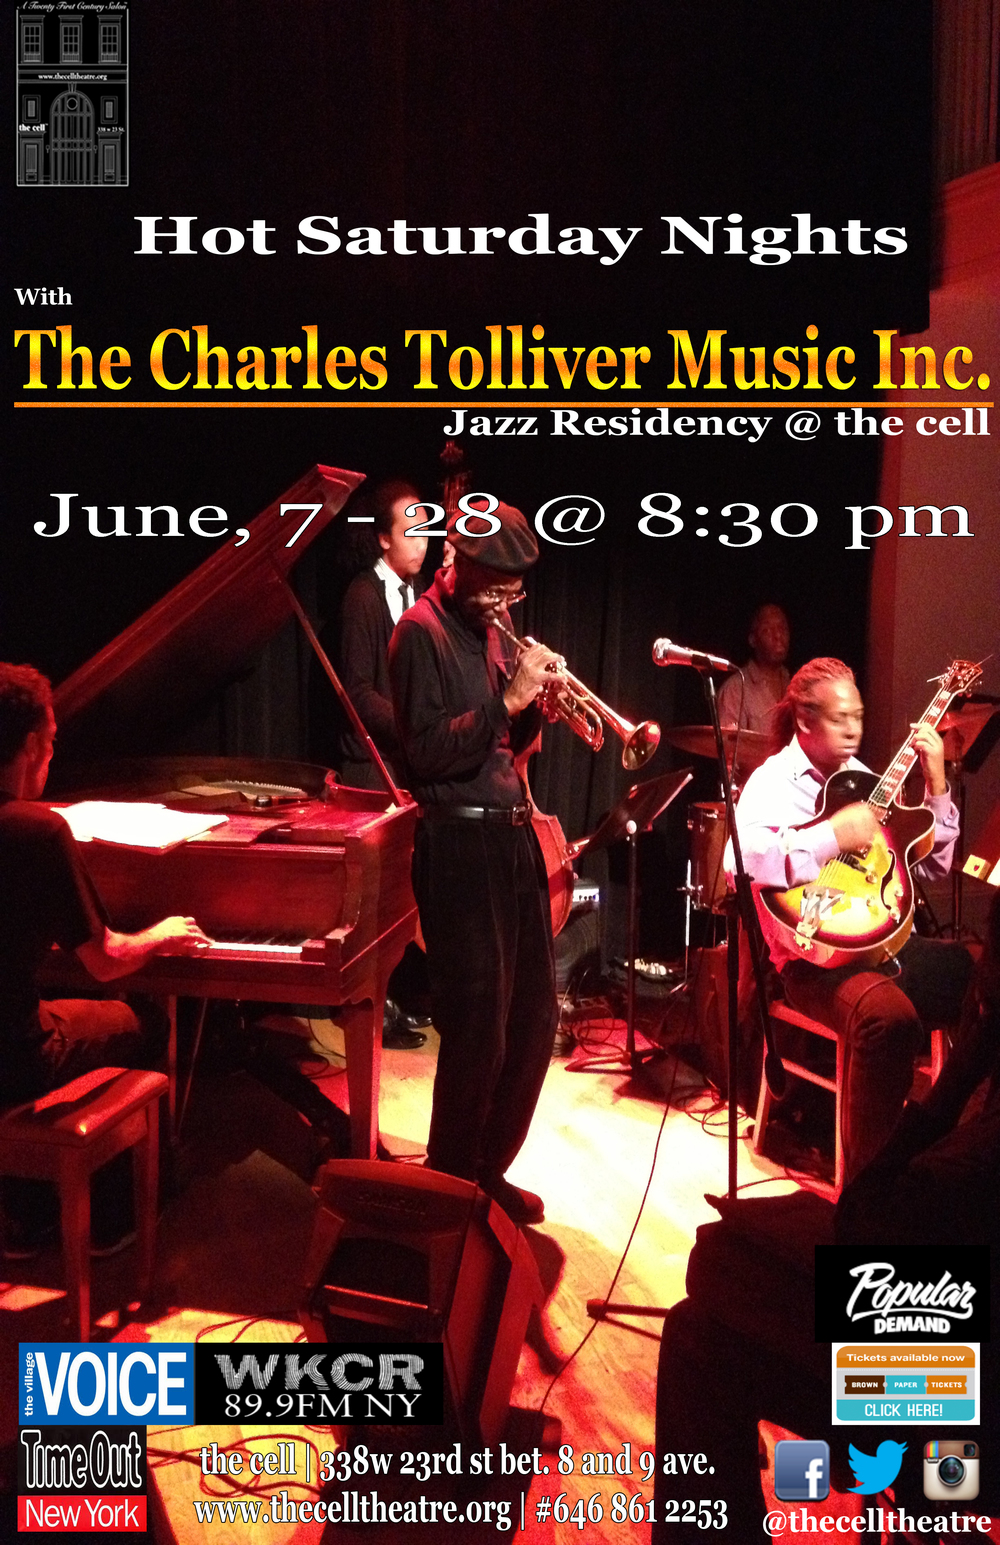 "Charles Tolliver began his professional career and simultaneously his recording debut with the saxophone giant Jackie McLean on Blue Note Records in 1964. Since then he has become one of the preeminent trumpeters in Jazz as well as one of its most gifted composer/arranger bandleaders. He is also a Grammy nominated recipient for his Blue Note Records recording ""With Love"". With a career that has spanned five decades he has recorded and/or performed with such renowned artists as Roy Haynes, Hank Mobley, Willie Bobo, Horace Silver, McCoy Tyner, Sonny Rollins, Booker Ervin, Gary Bartz, Gerald Wilson Orchestra, Oliver Nelson, Stanley Cowell, Herbie Hancock, Andrew Hill, Louis Hayes, Roy Ayers, Art Blakey & the Jazz Messengers, and owned the trumpet chair with the great Max Roach for some years. One of his latest recordings is ""Emperor March"" recorded live at the Blue Note club New York City.  The Charles Tolliver Quintet just returned from a triumphal European Tour that led the band from Paris to Zagreb for the second part of its Jazz Residency @ the cell.  read more here!"